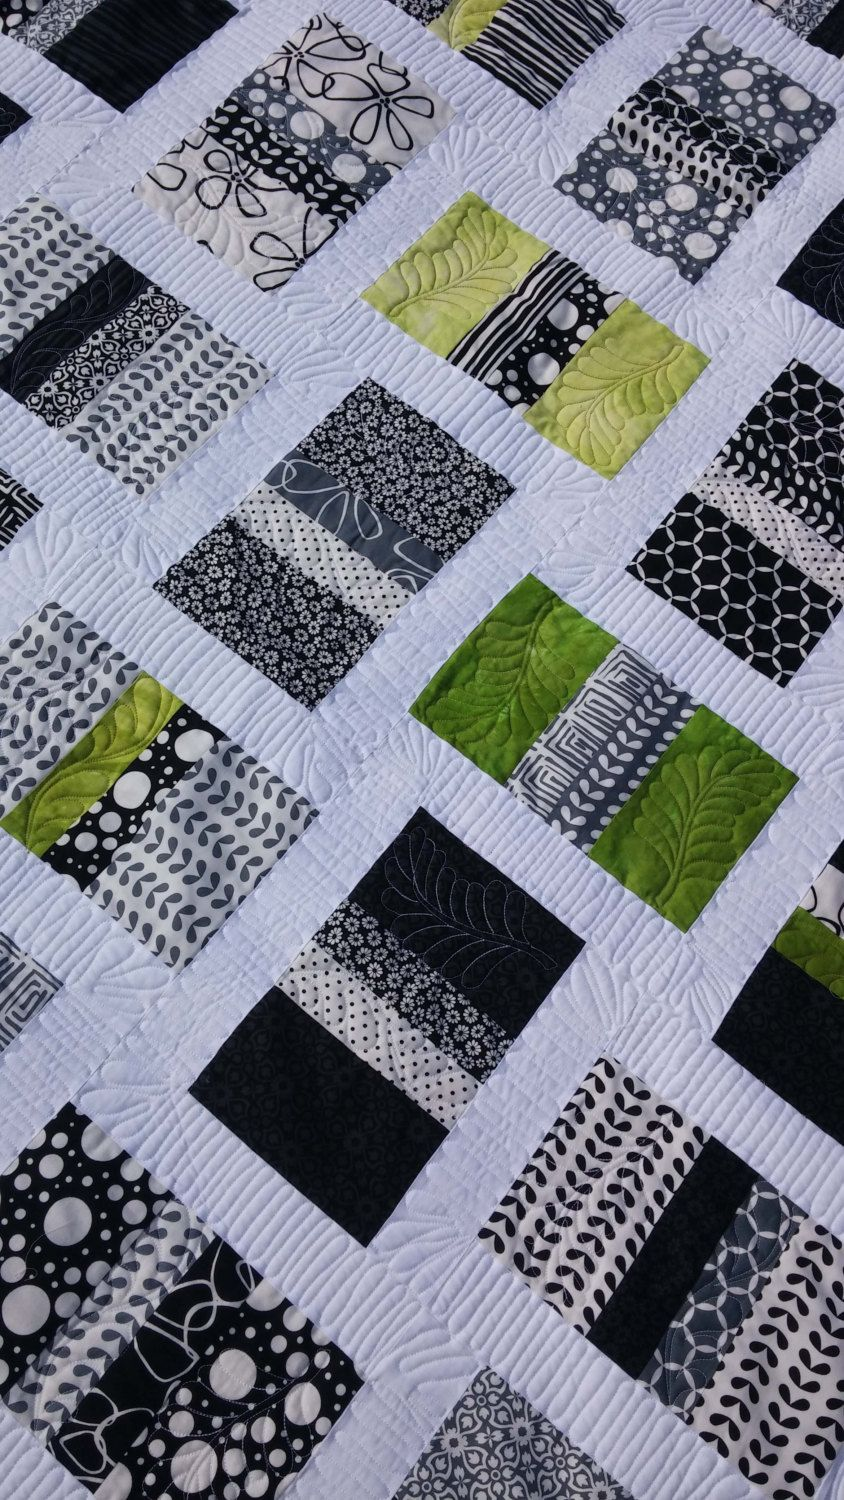 Handmade King quilt in Shades of Black by Me and My Sister Designs with hand dyed lime green fabrics - contemporary by morethanjustquilts on Etsy